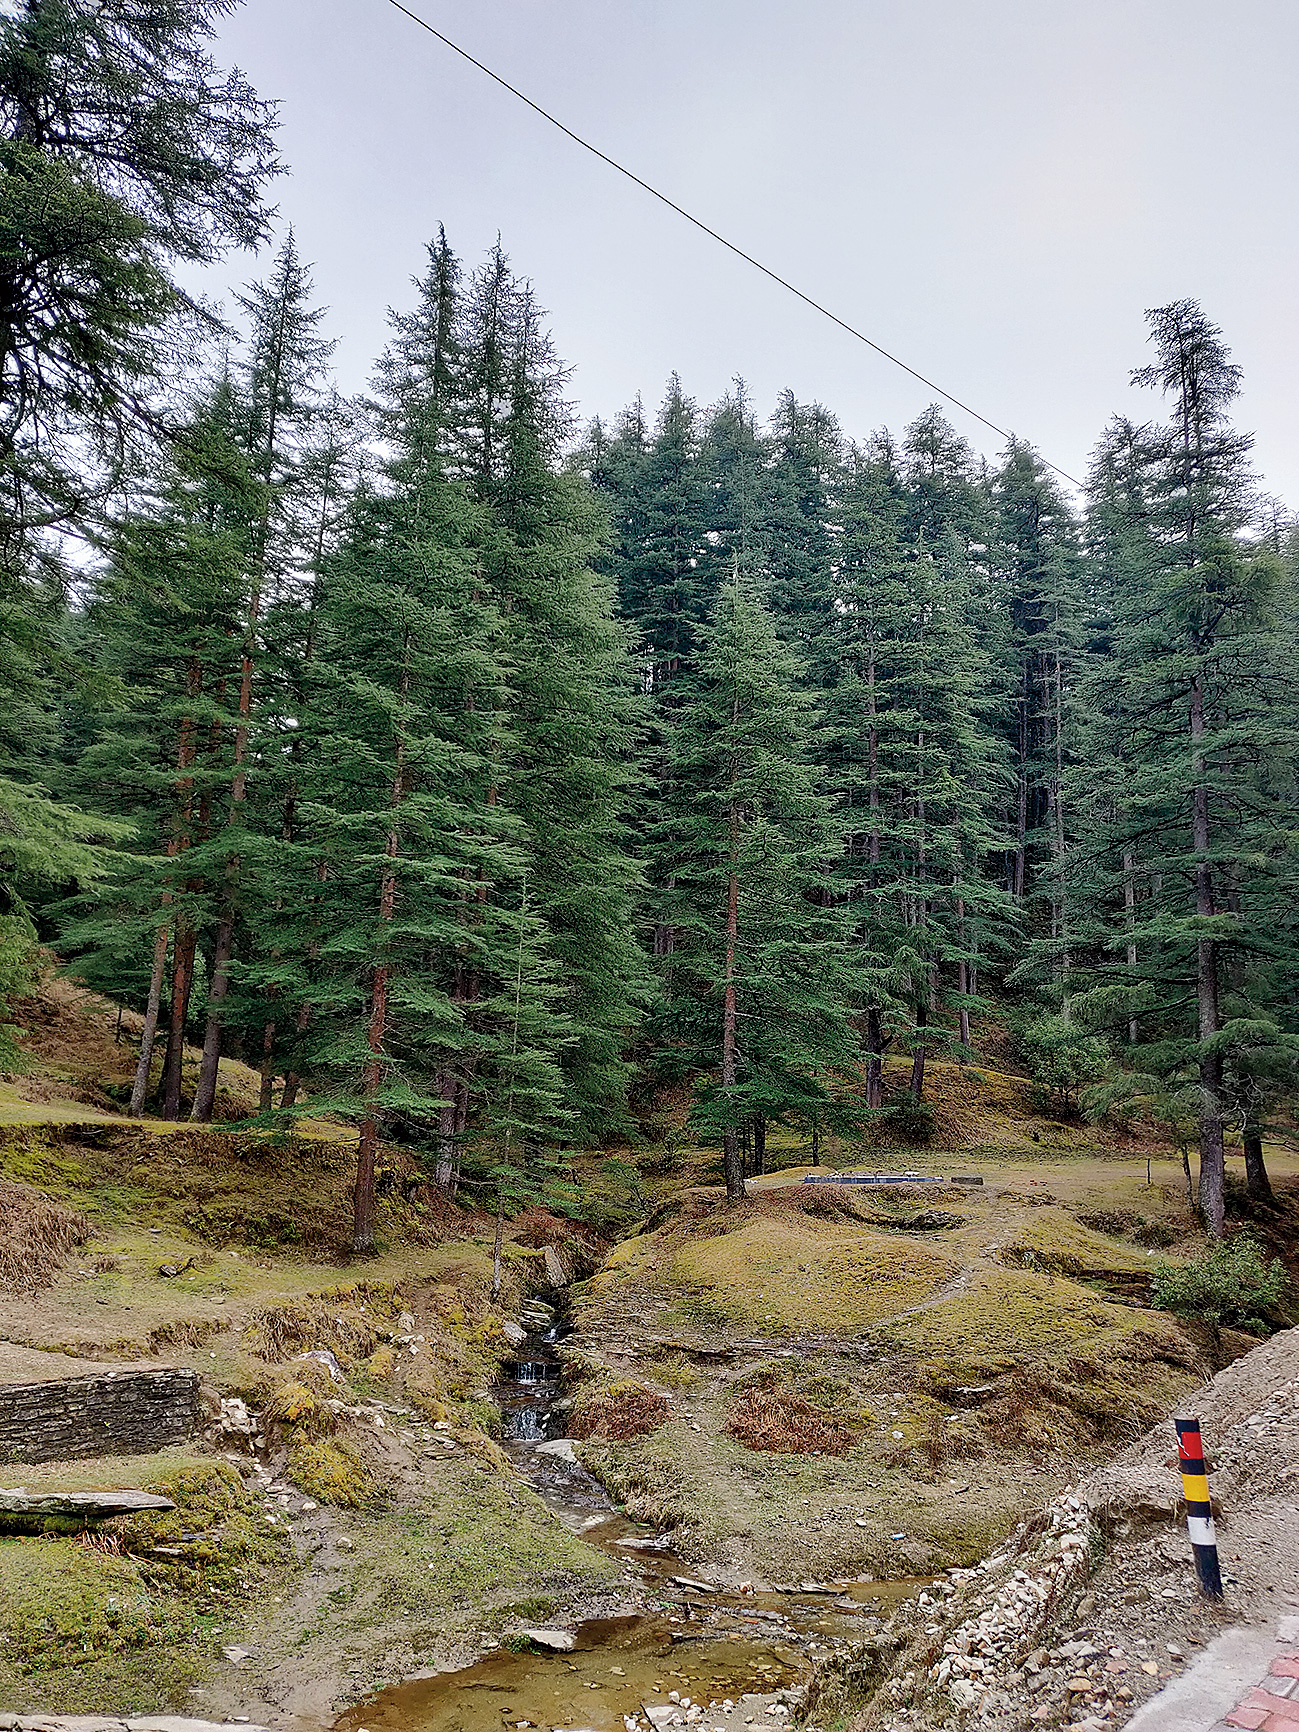 A small stream and a line of deodar trees made for a pretty sight outside the Dandeshwar temple